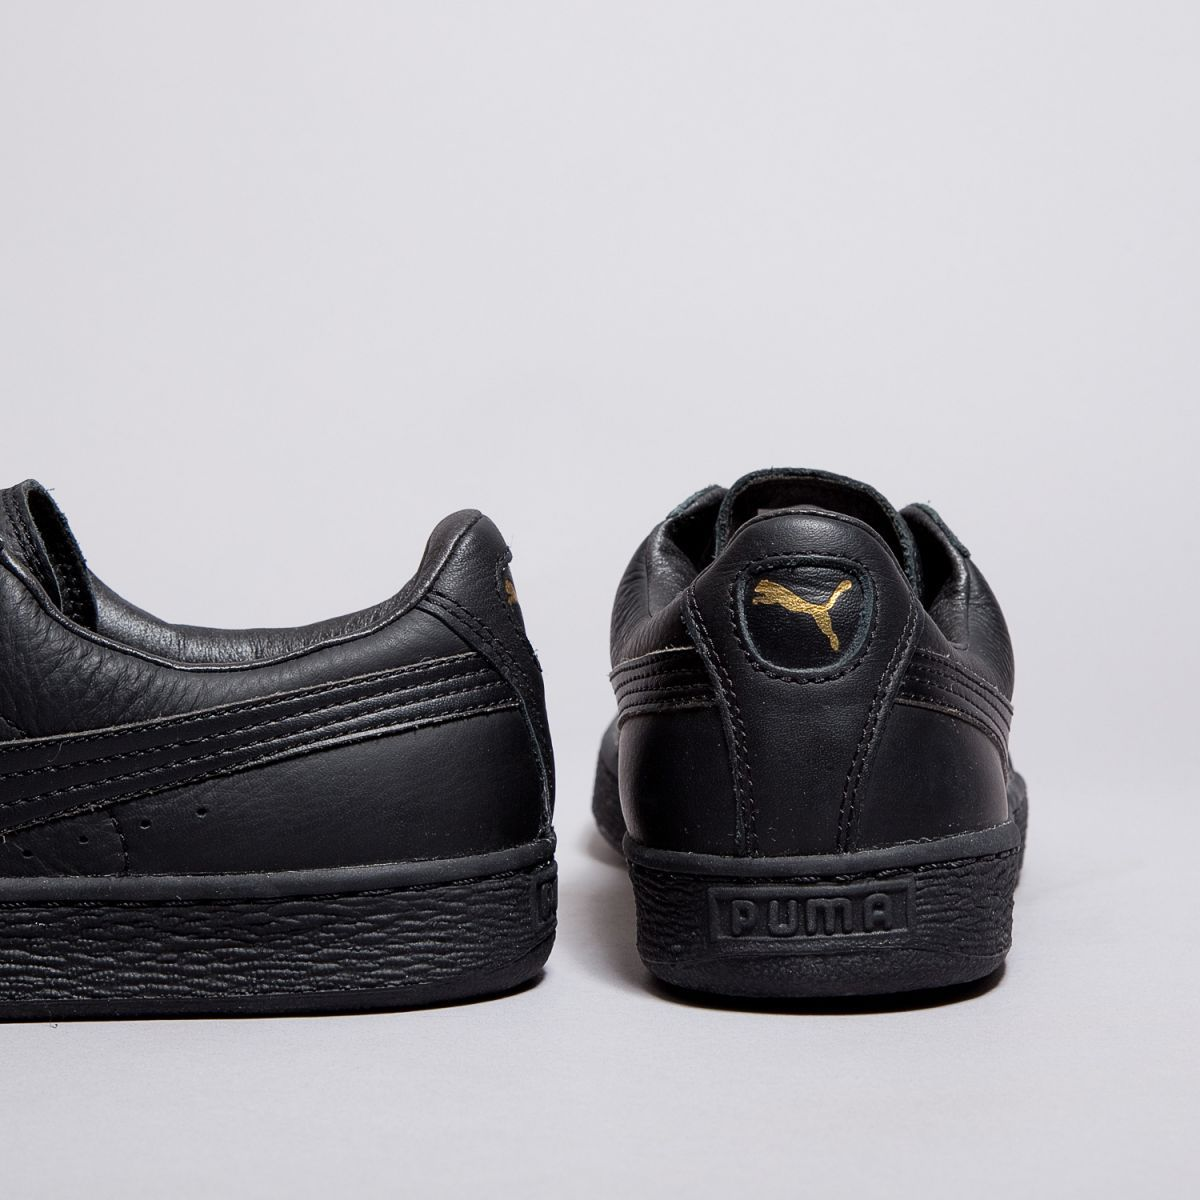 Men's Shoes sneakers Puma Basket Classic Lifestyle 354367 19 | Zapatos y  zapatillas | Pinterest | Pumas, Shoes sneakers and Lifestyle